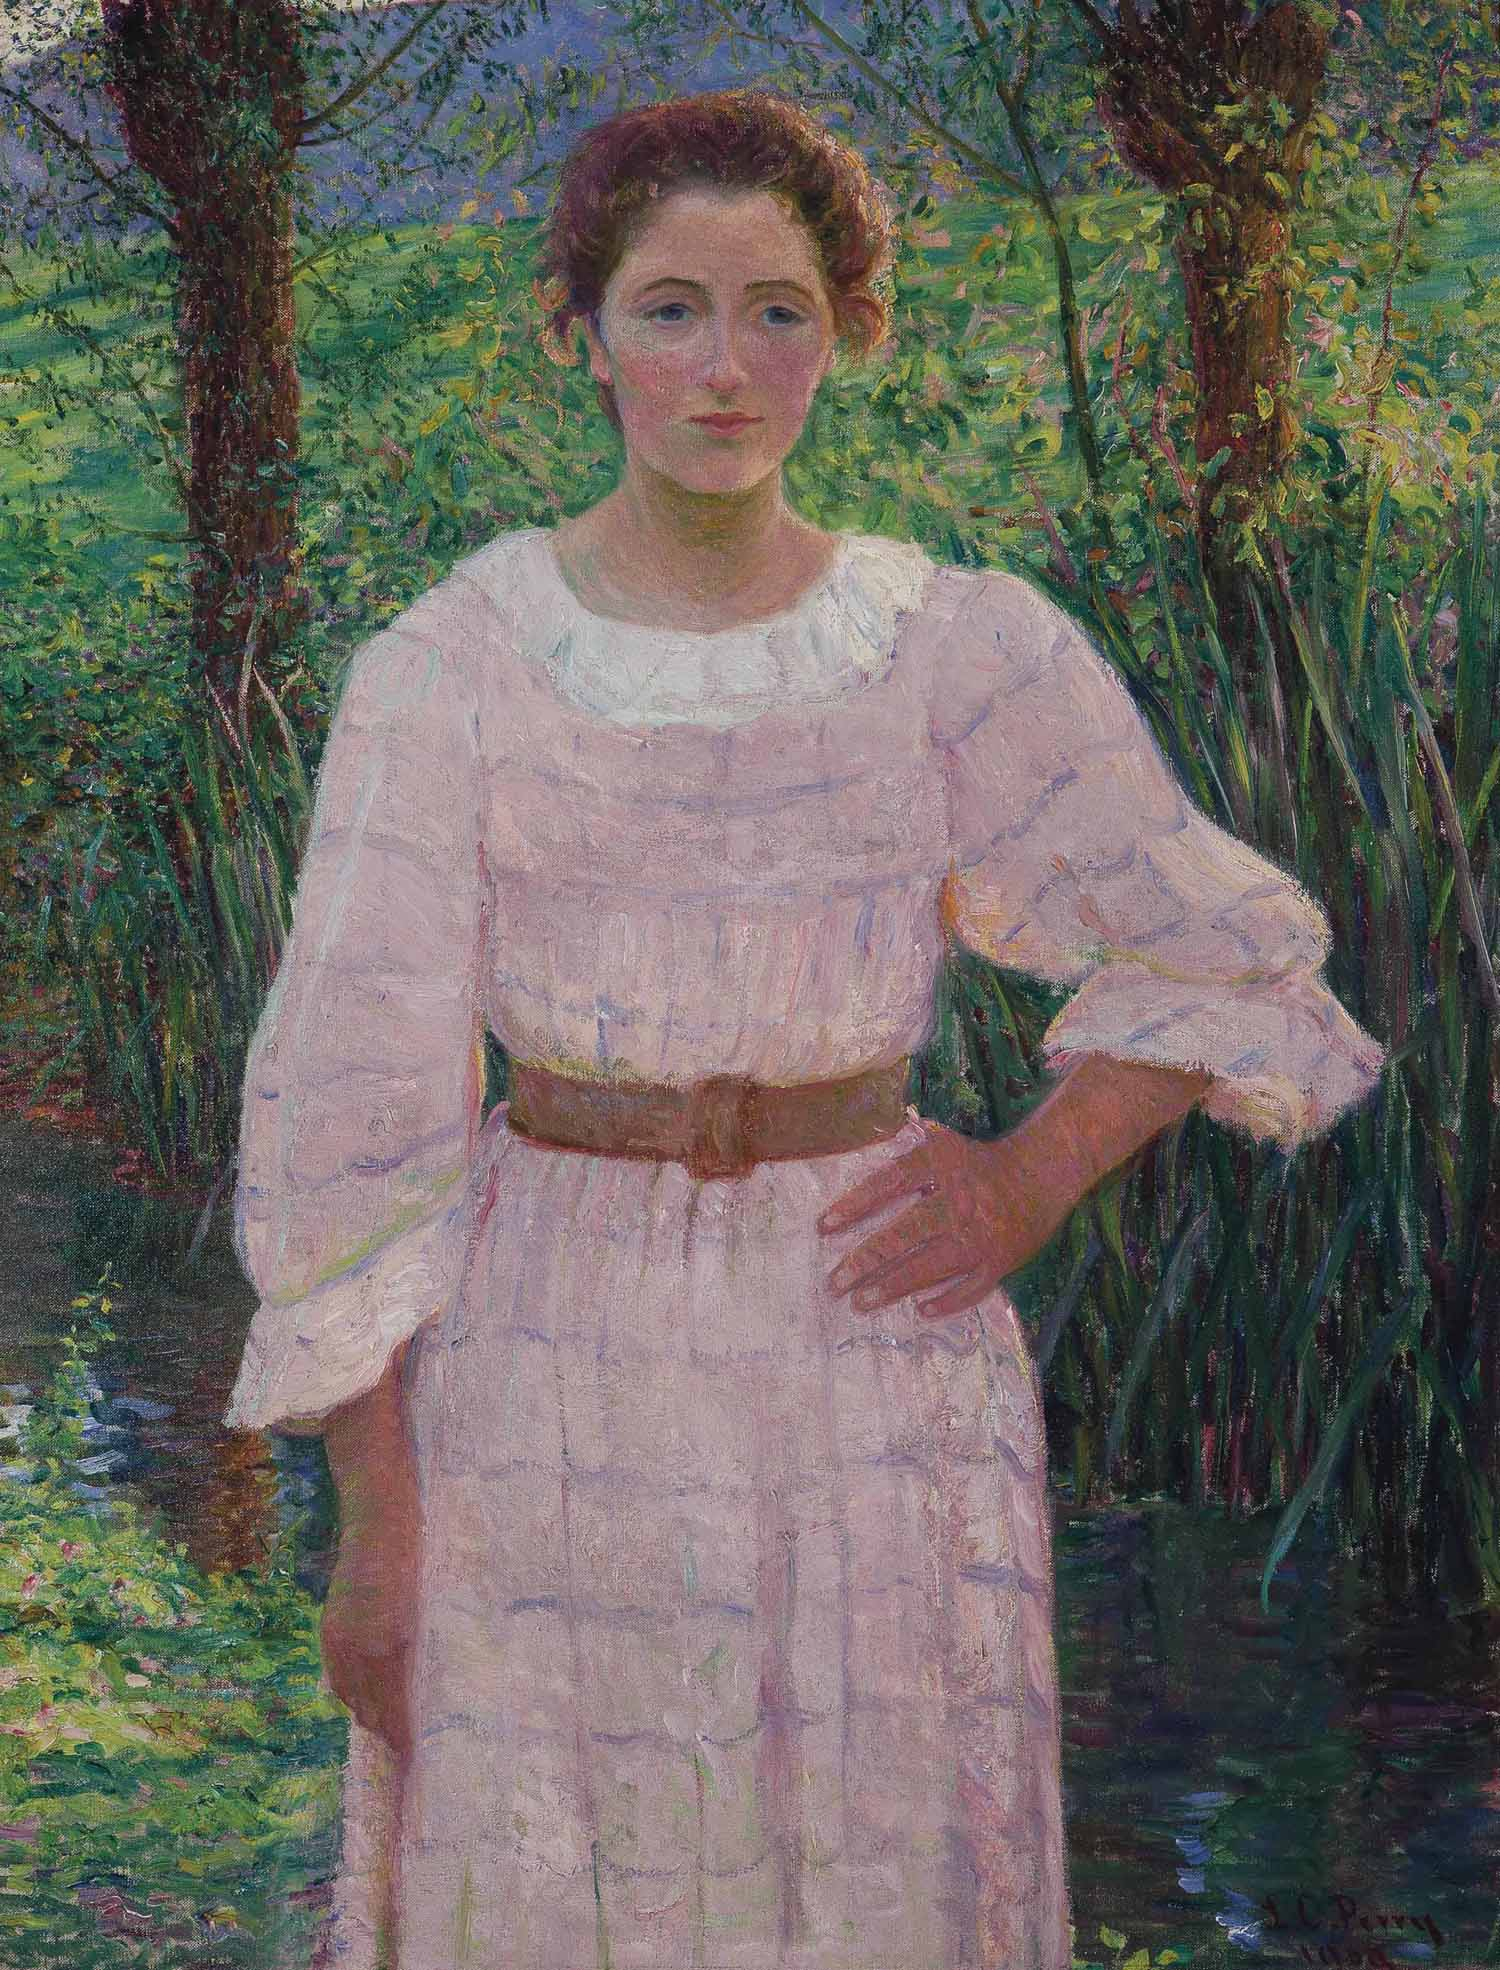 By the Brook, Giverny, France (Woman in Pink Dress)